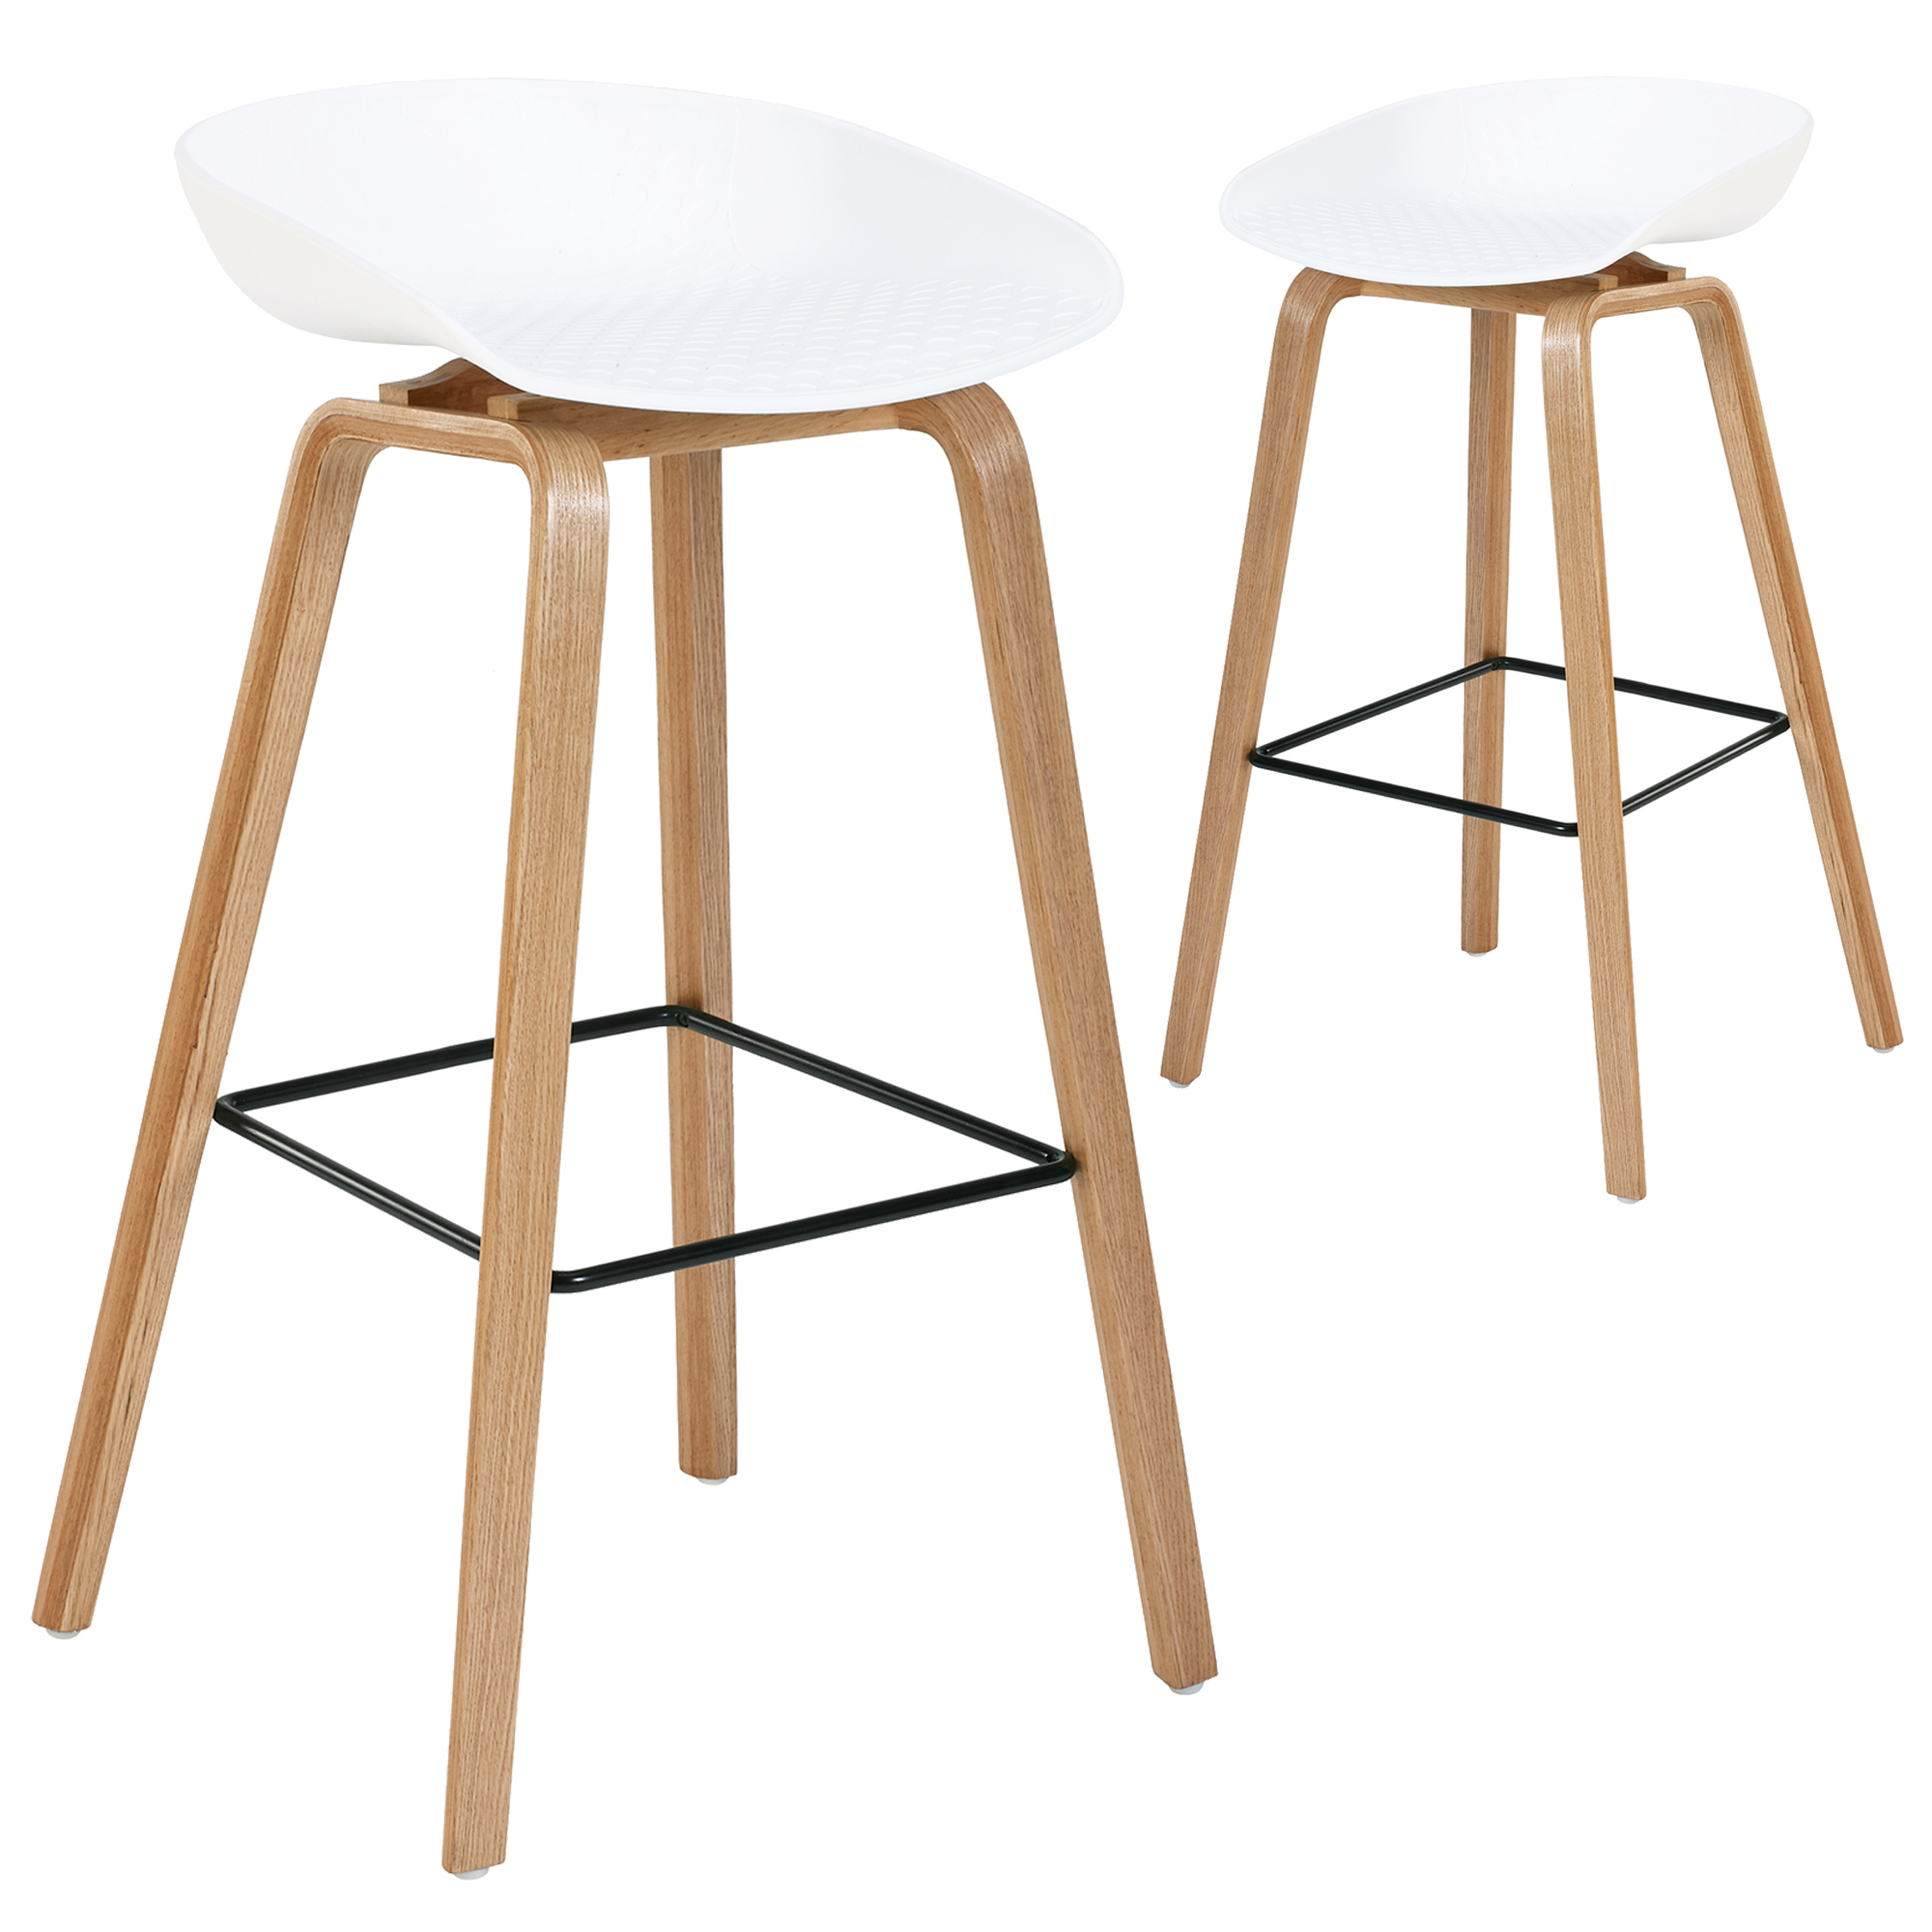 Sku tpwt2758 hayley low back barstools is also sometimes listed under the following manufacturer numbers slsbswhb